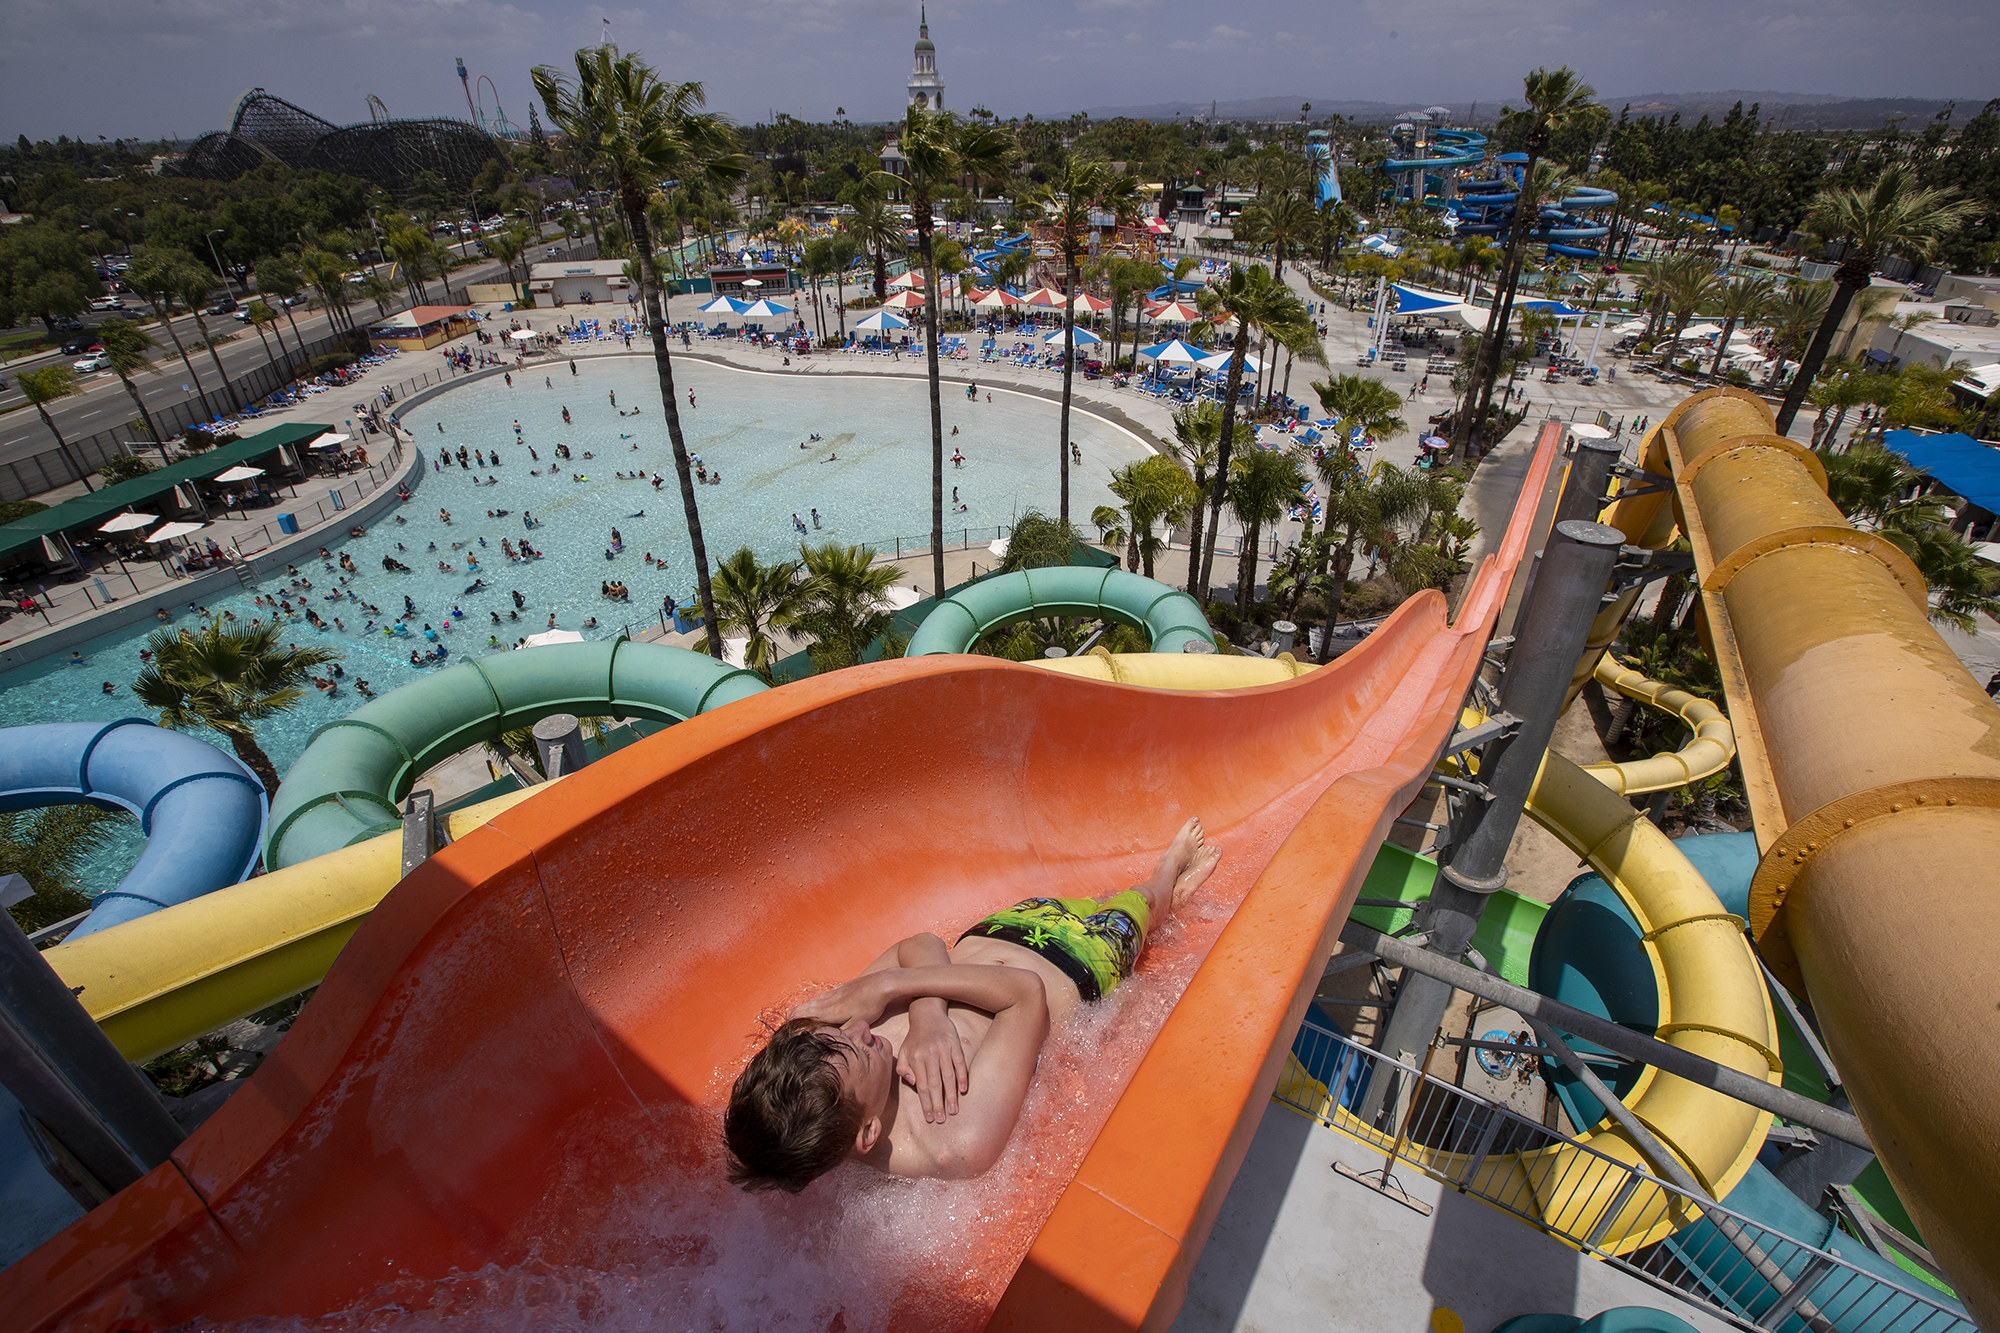 Overhead view of a boy going down a waterslide, with people in a water park behind him